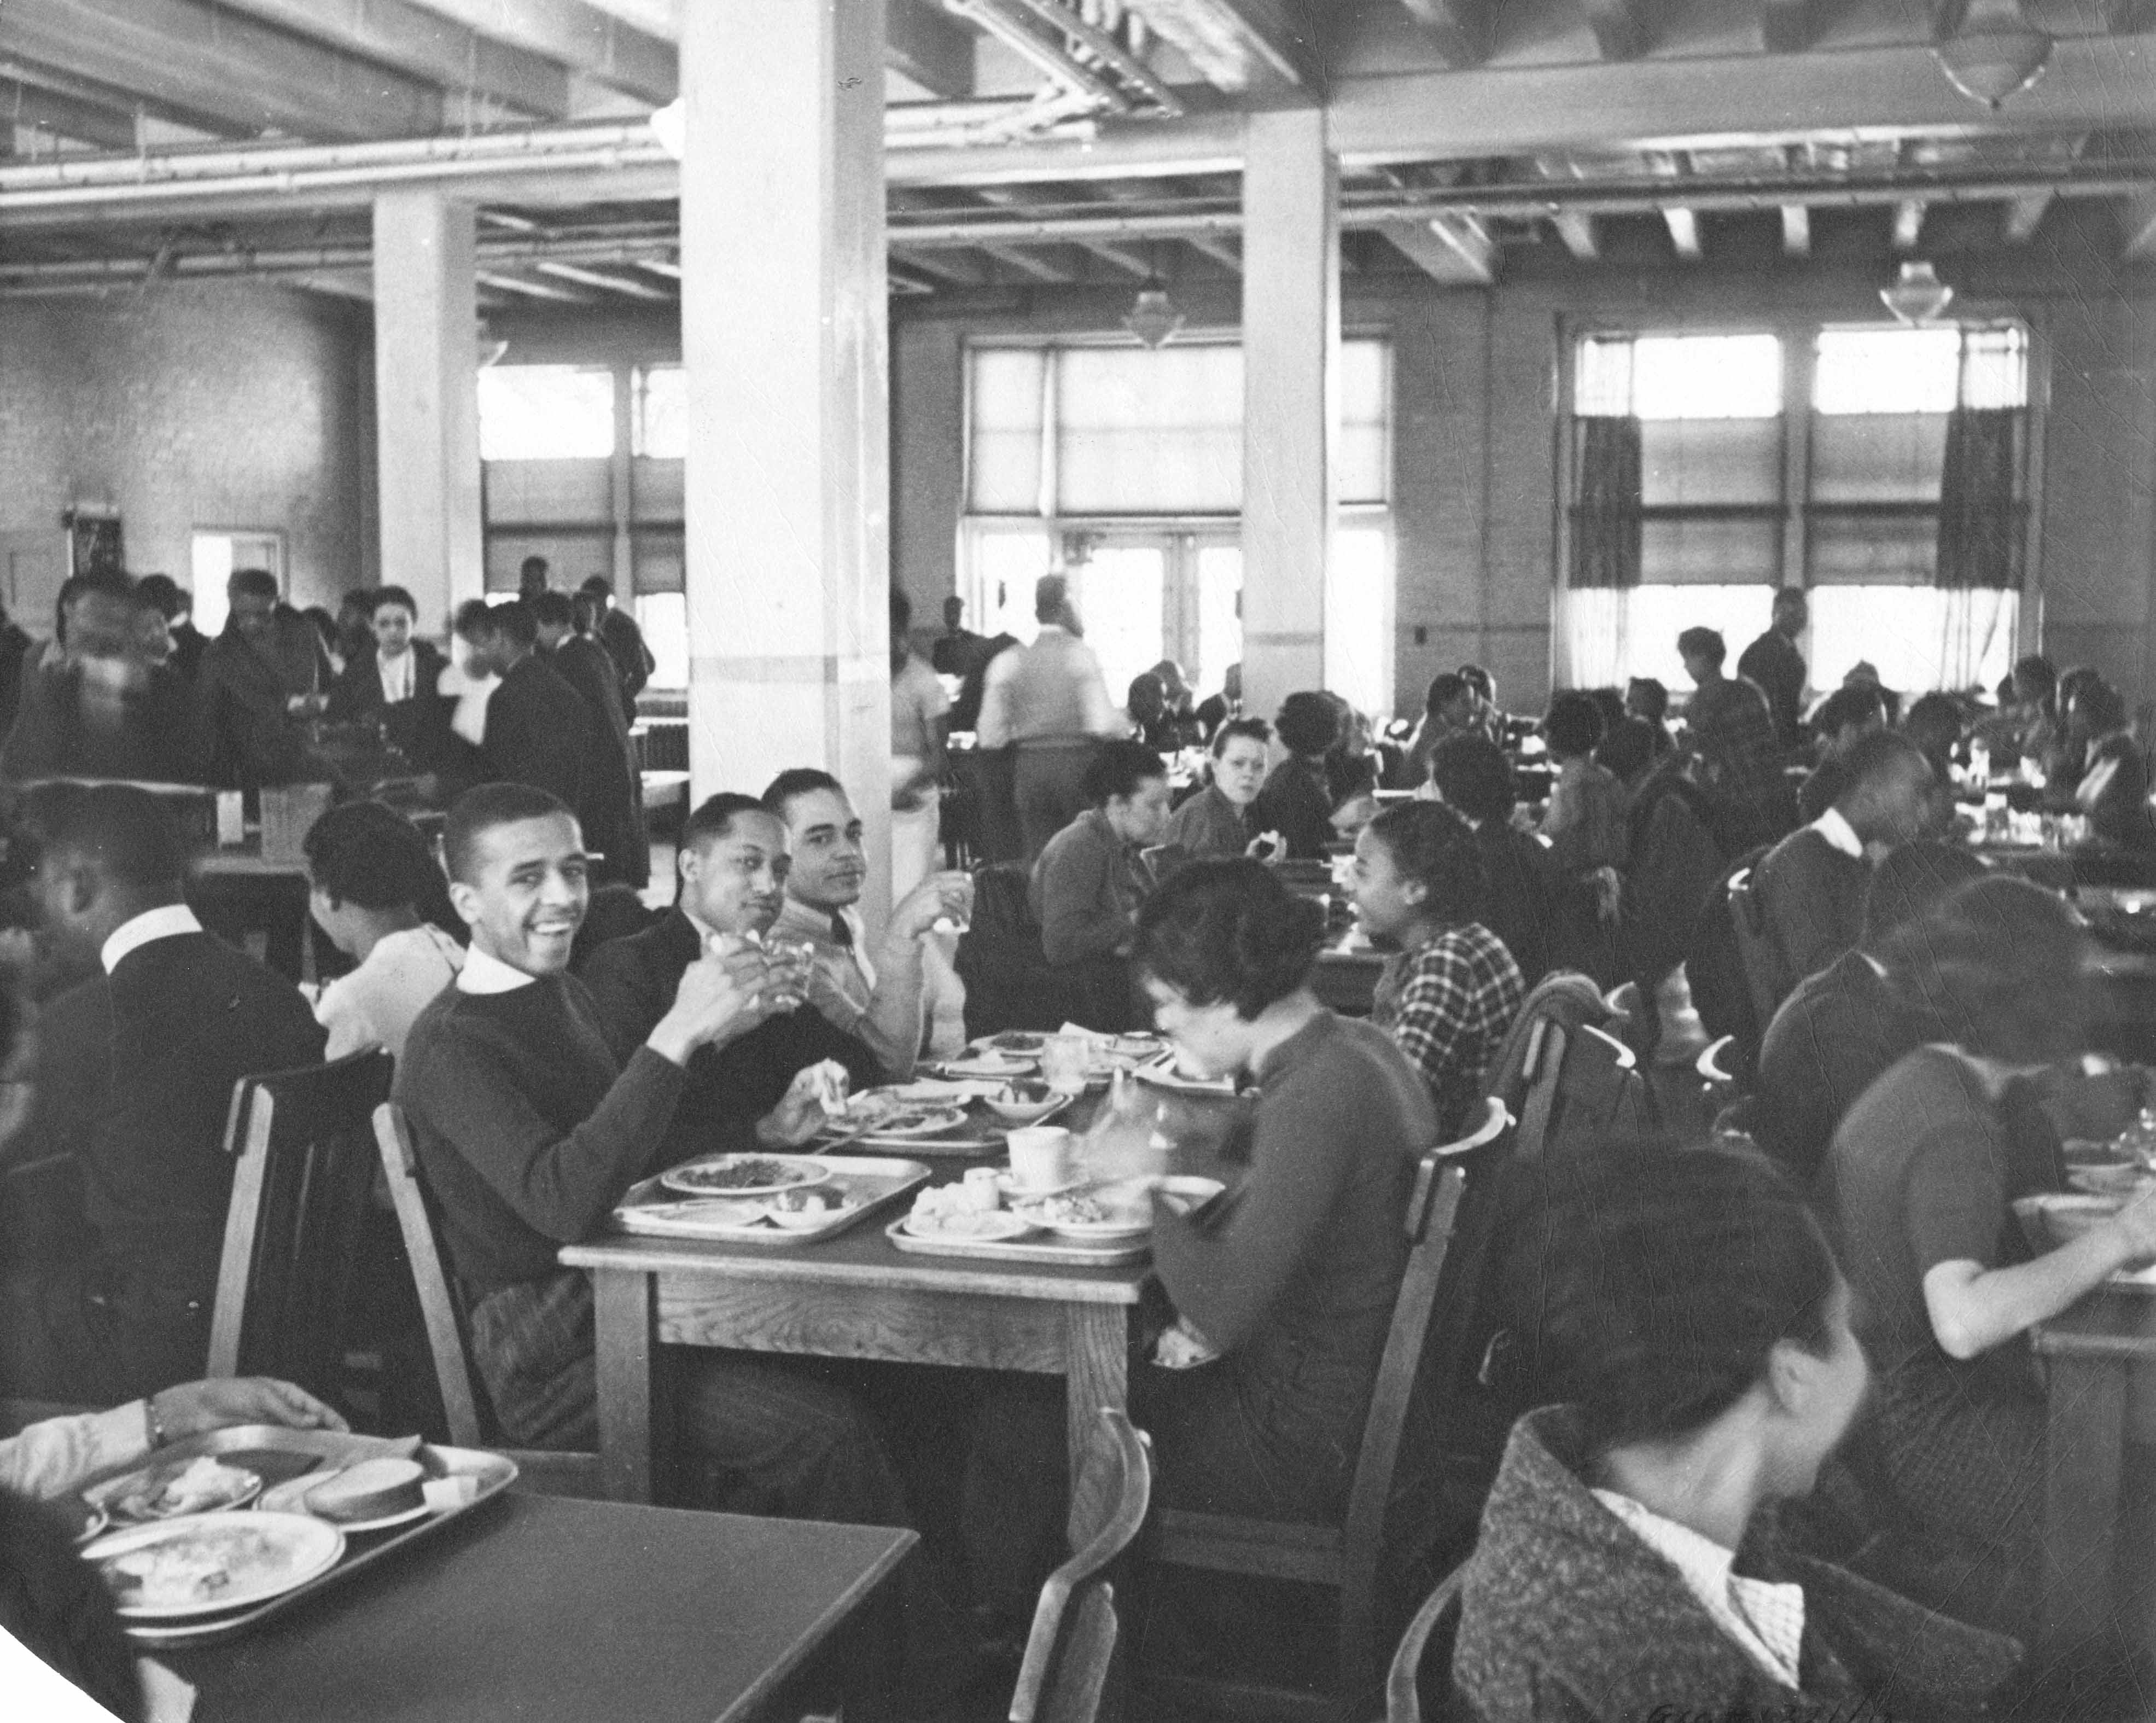 Cafeteria at Lincoln University, c. 1937